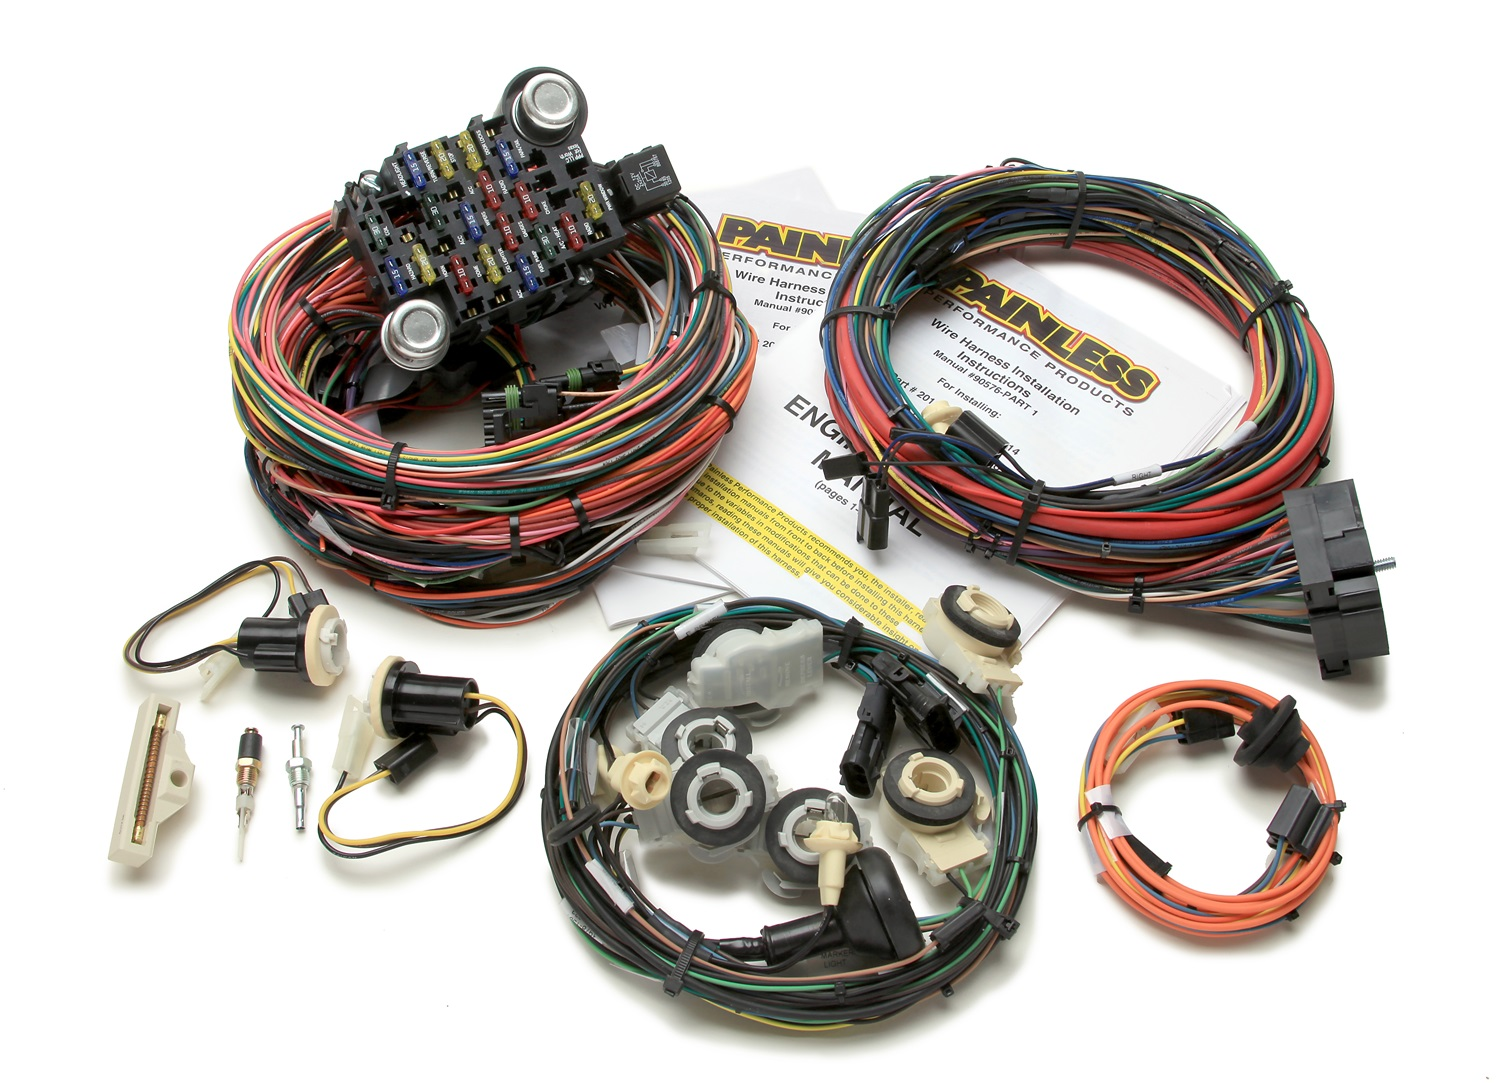 20114 CamaroHarness painless wiring 20114 26 circuit direct fit harness fits 78 81